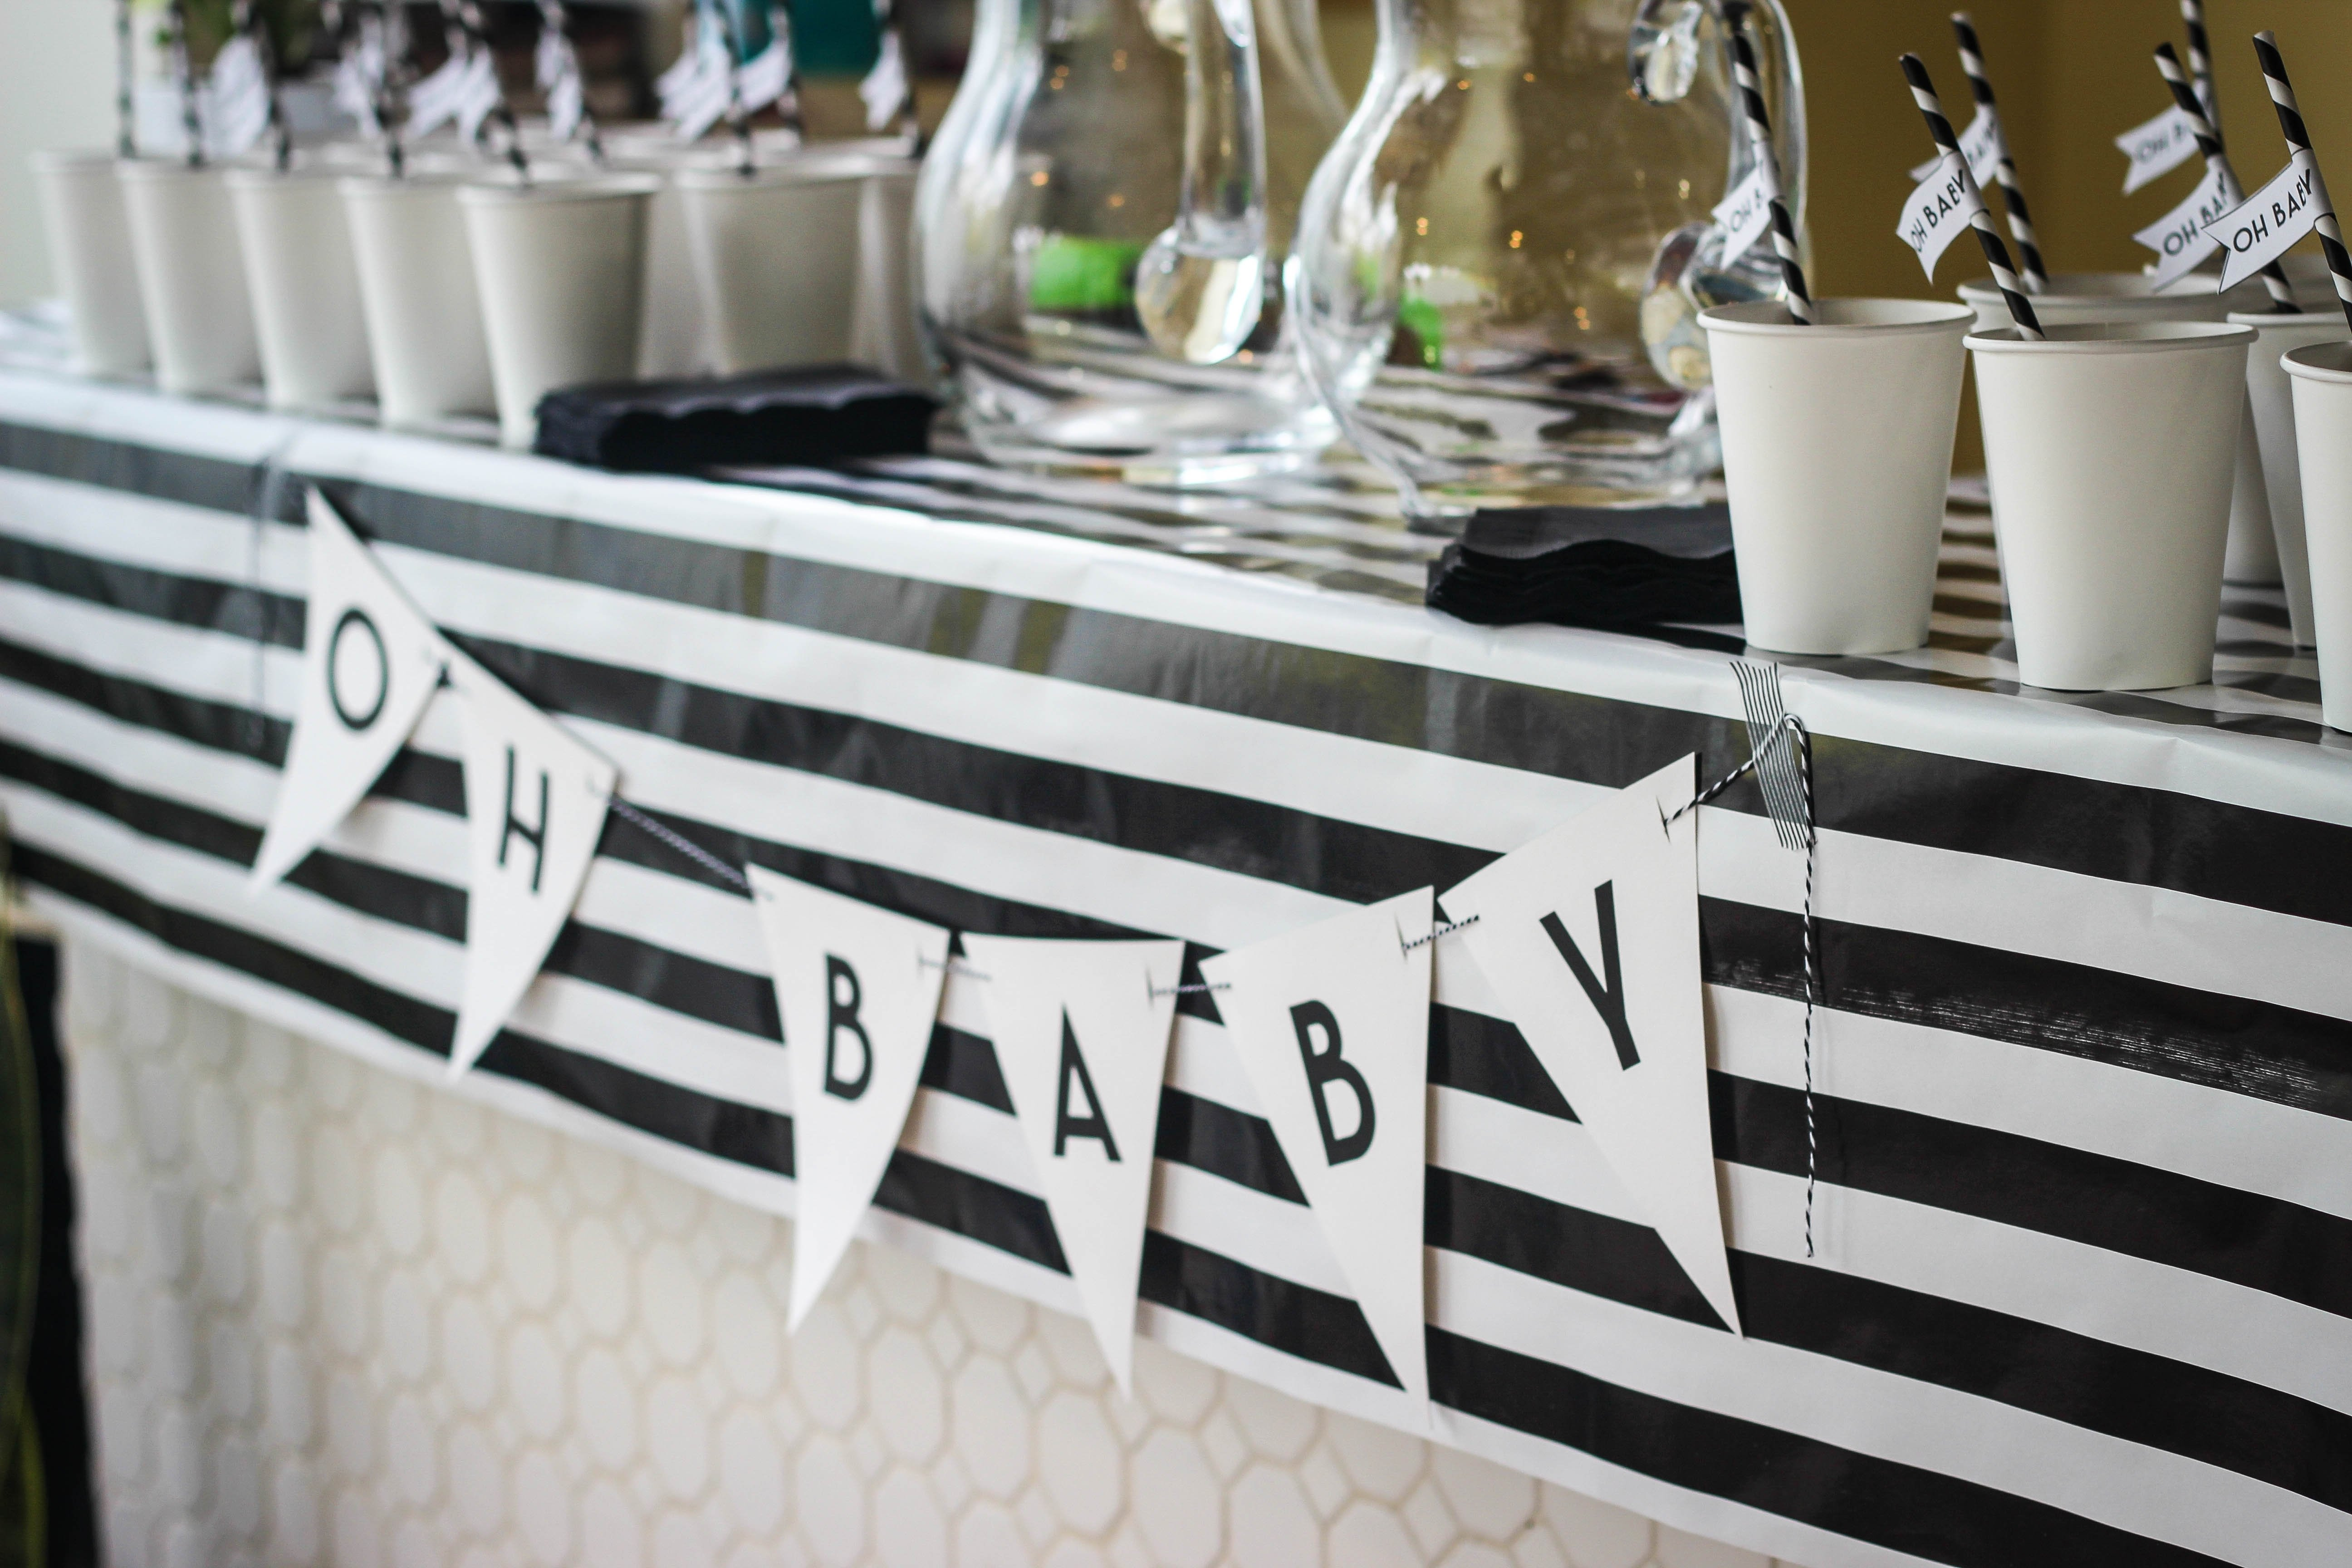 10 Great Black And White Baby Shower Ideas black and white baby shower themes e280a2 baby showers ideas 2021